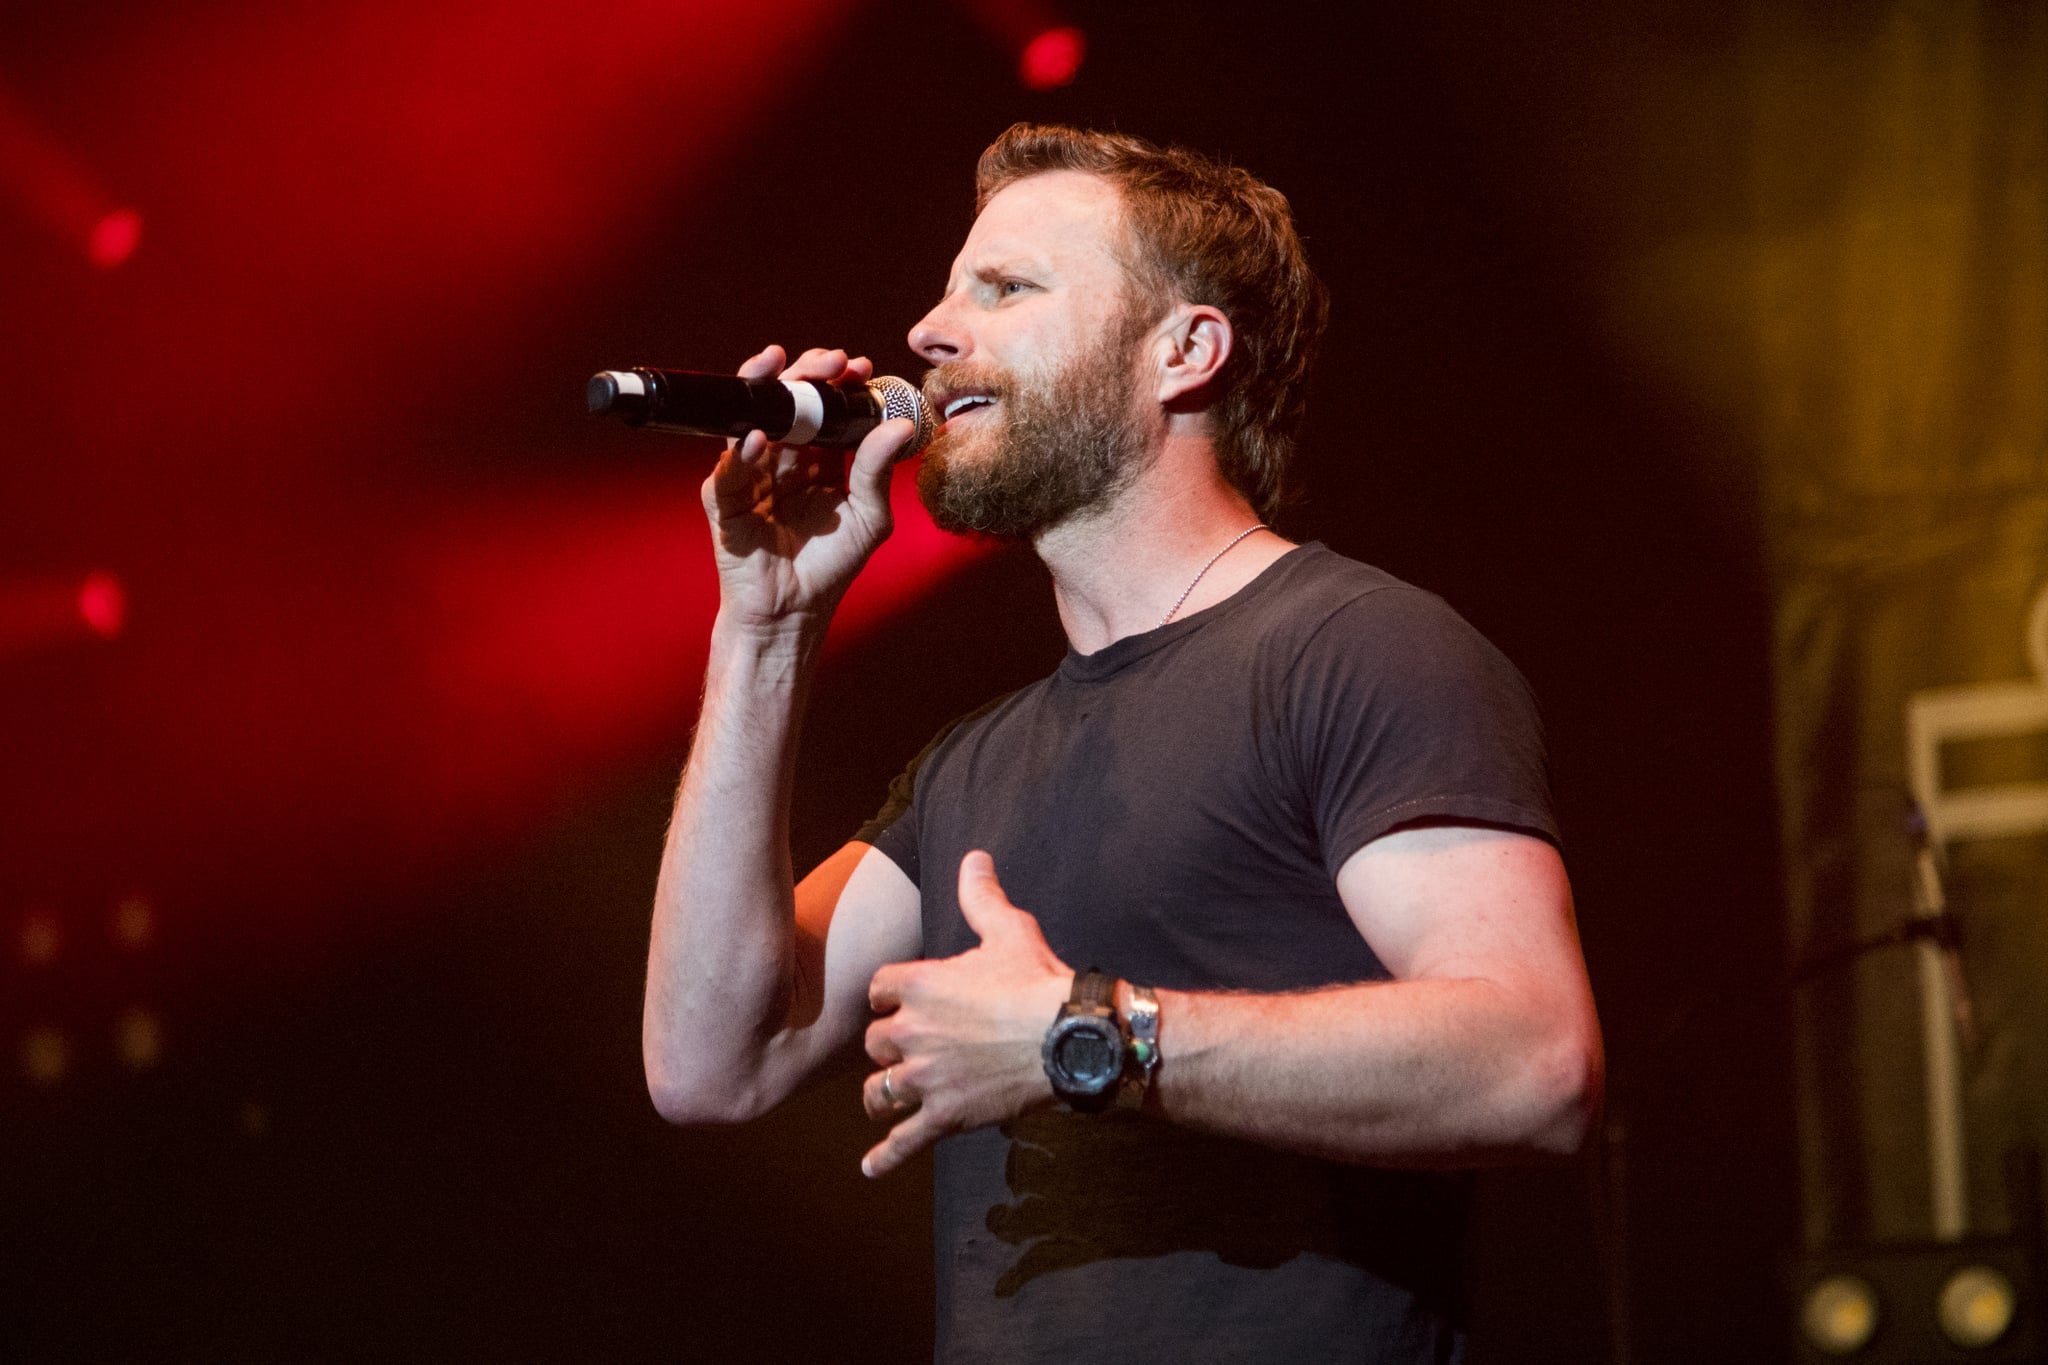 NEW ORLEANS, LA - APRIL 28:  Dierks Bentley performs during Trombone Shorty's Treme Threauxdown at Saenger Theatre on April 28, 2018 in New Orleans, Louisiana.  (Photo by Erika Goldring/Getty Images)